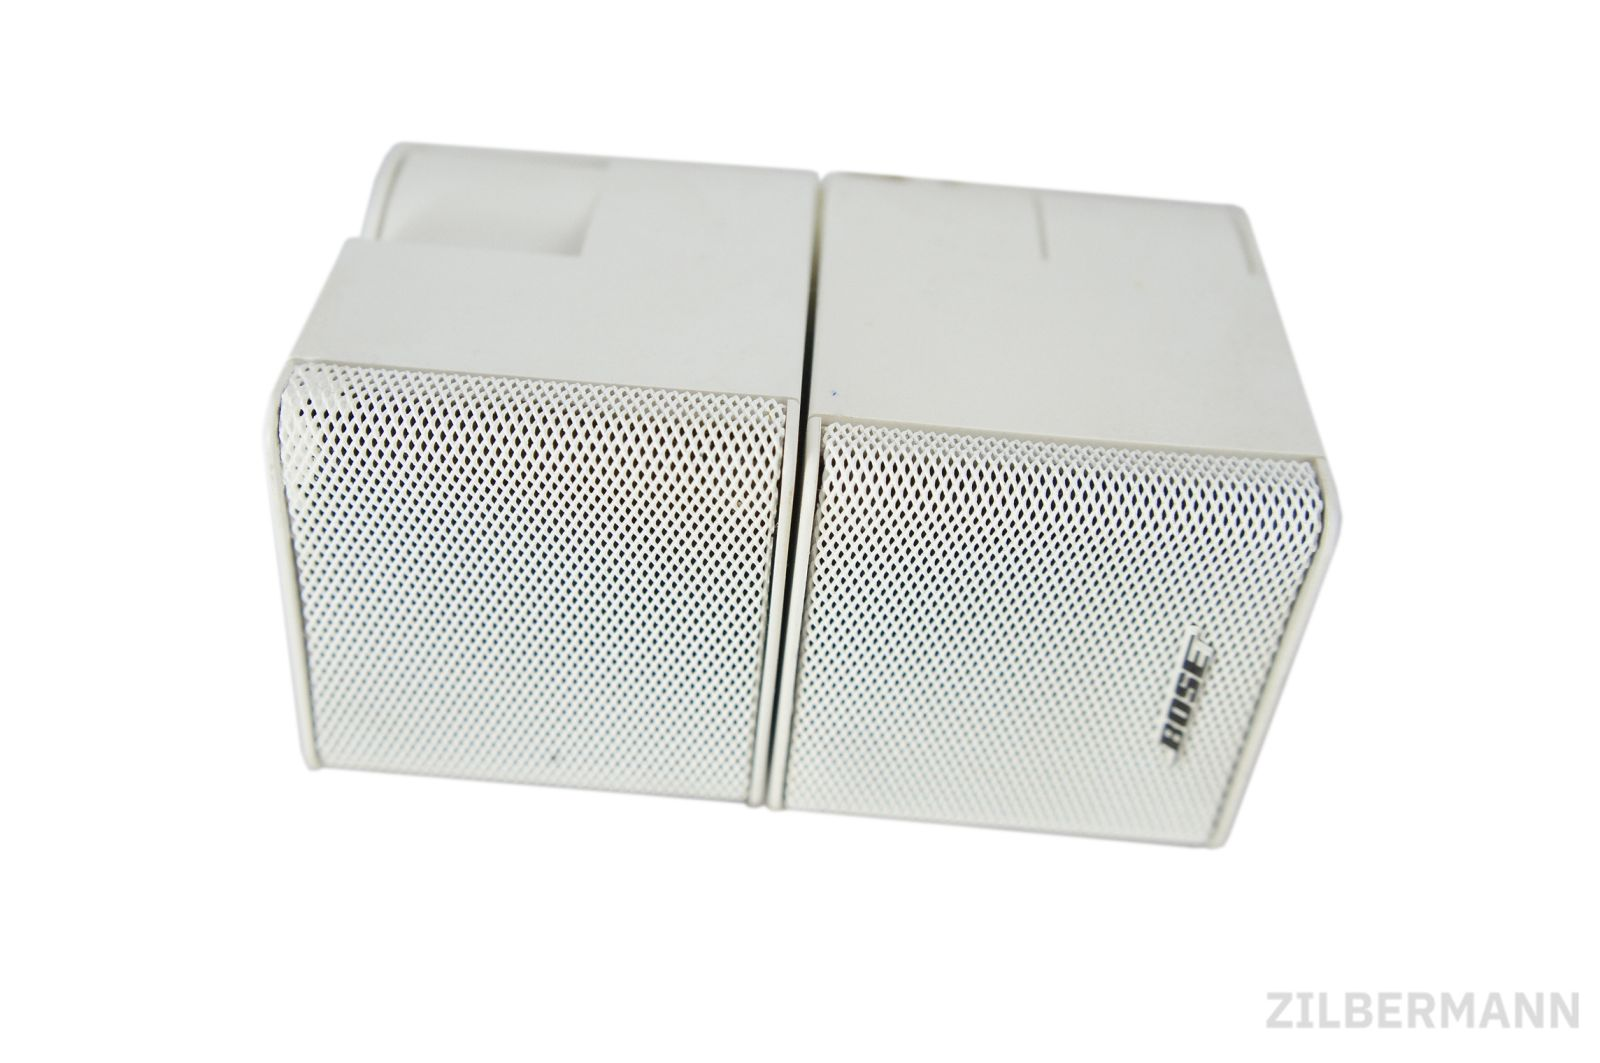 Bose_Jewel_Cube_Box_Satellit_mit_Adapter_Weiss_06